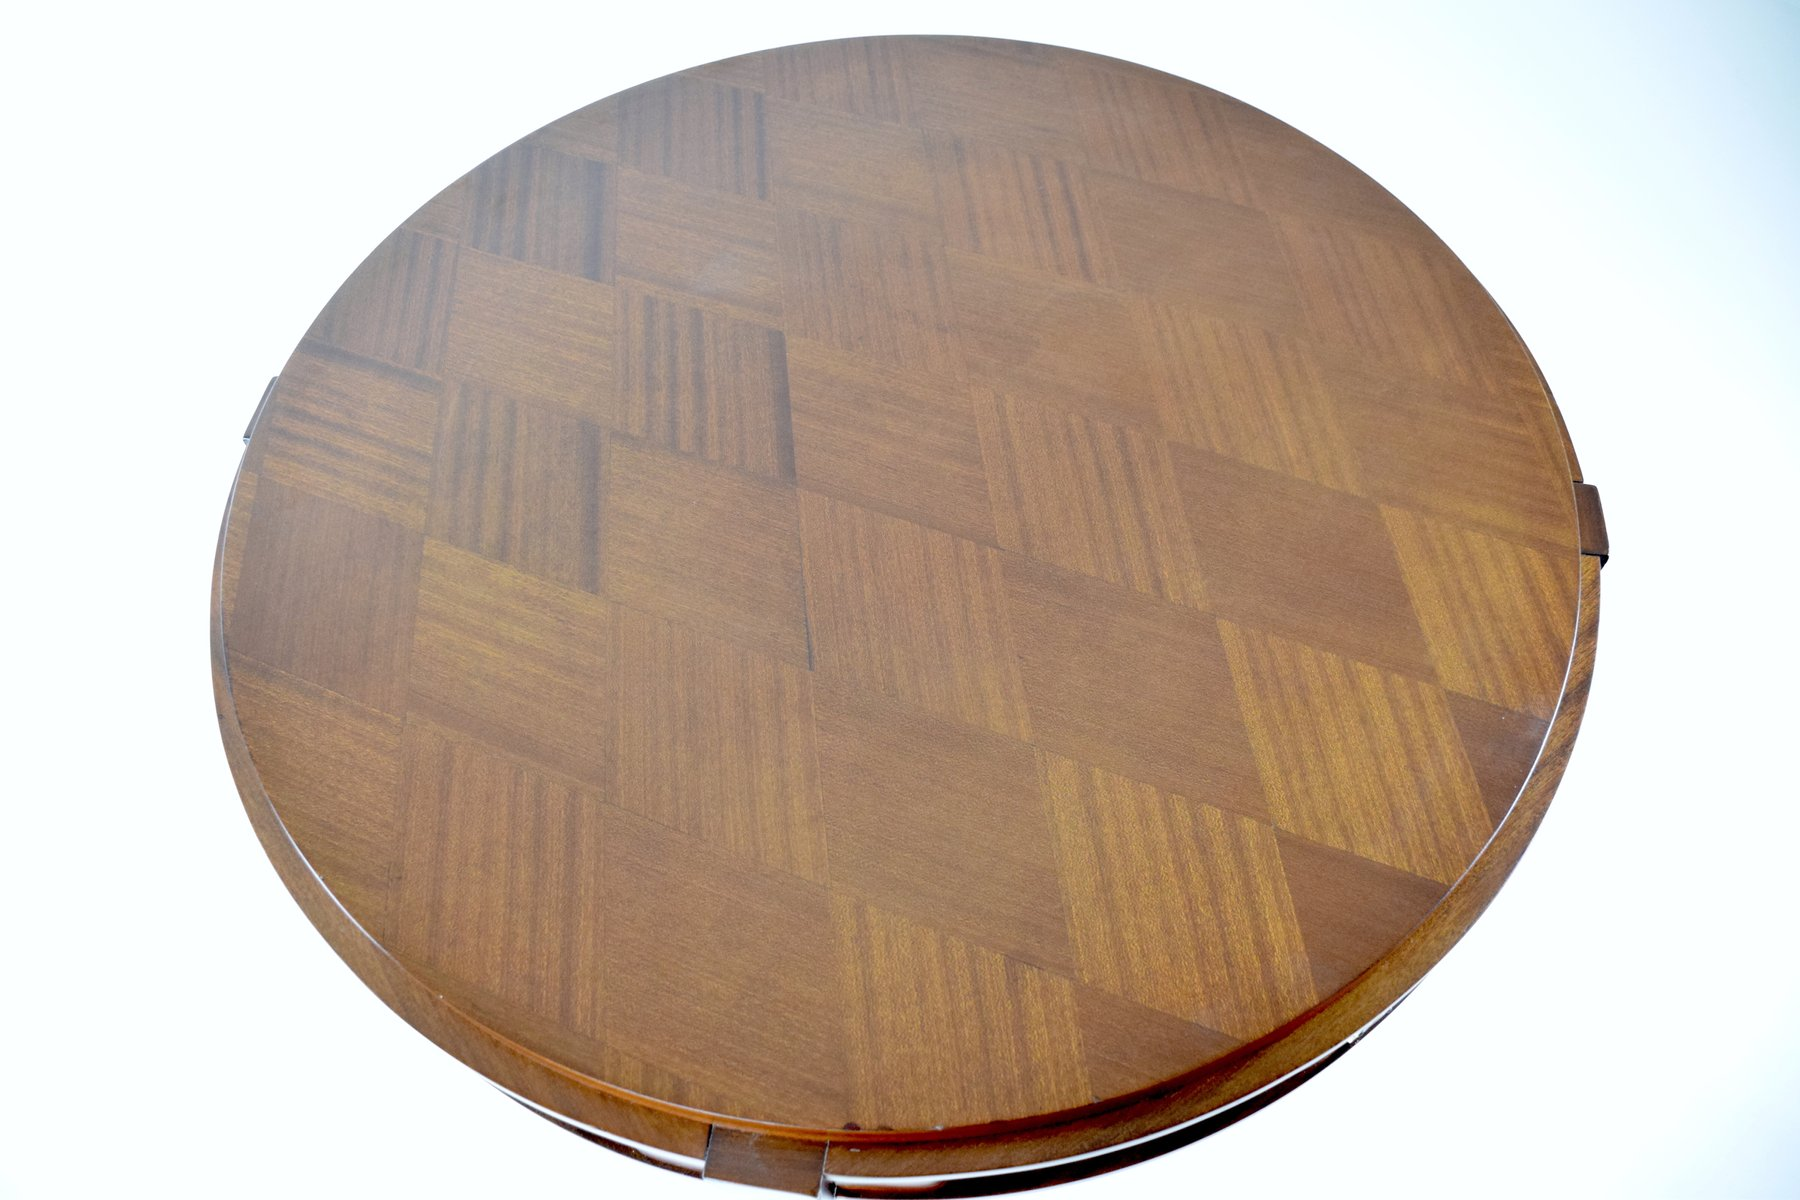 parquetry gueridon game table by jules leleu 1930s for sale at pamono. Black Bedroom Furniture Sets. Home Design Ideas